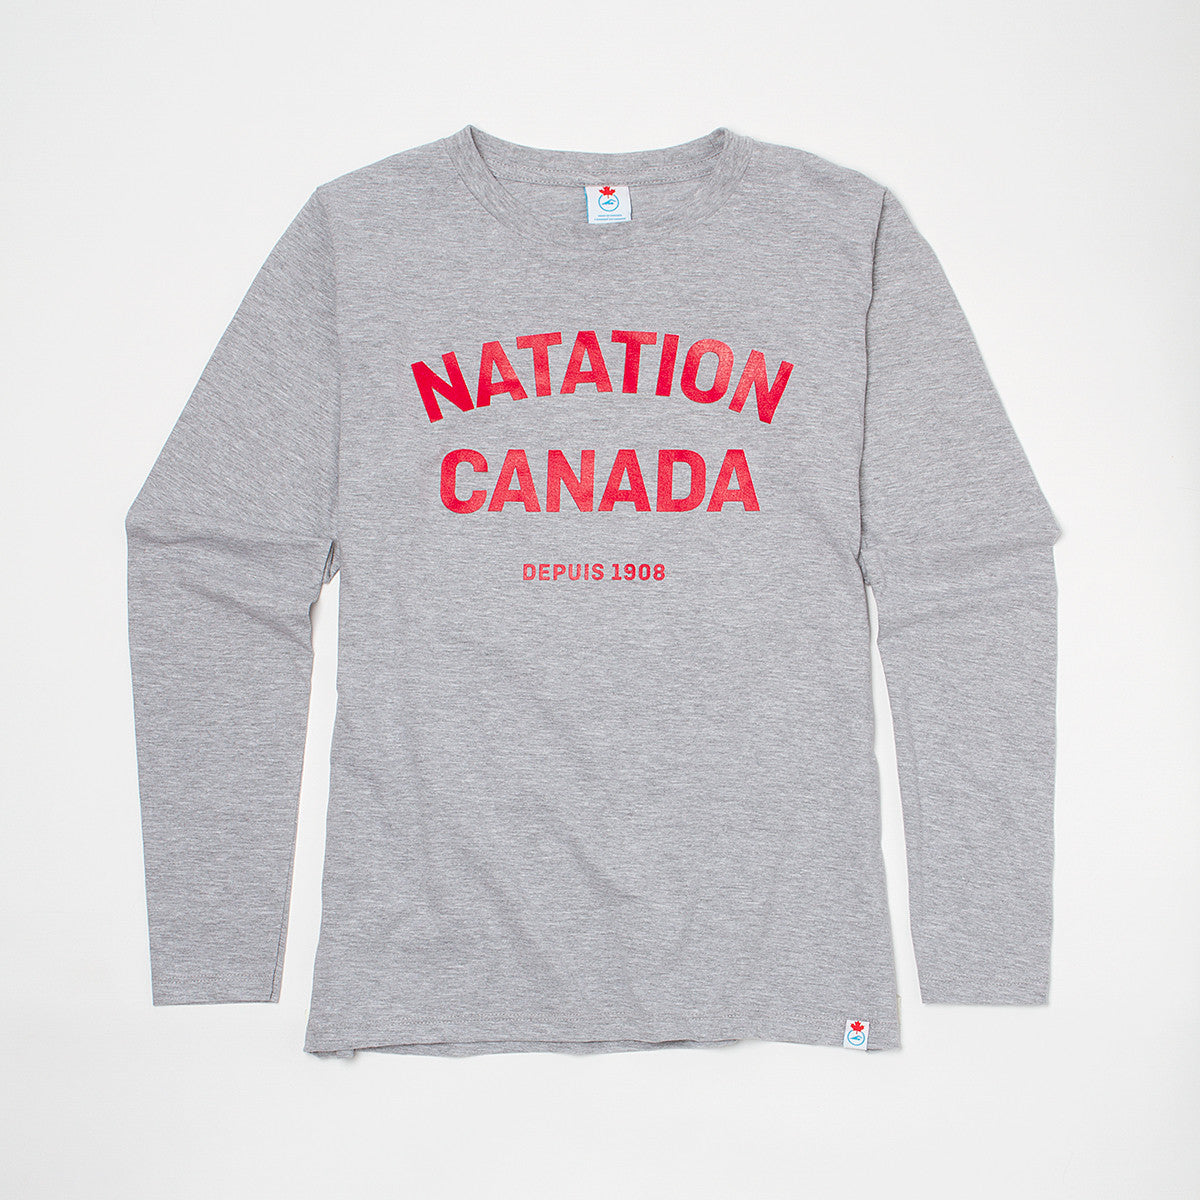 Women's Natation Canada Heather Grey Long Sleeve T-shirt